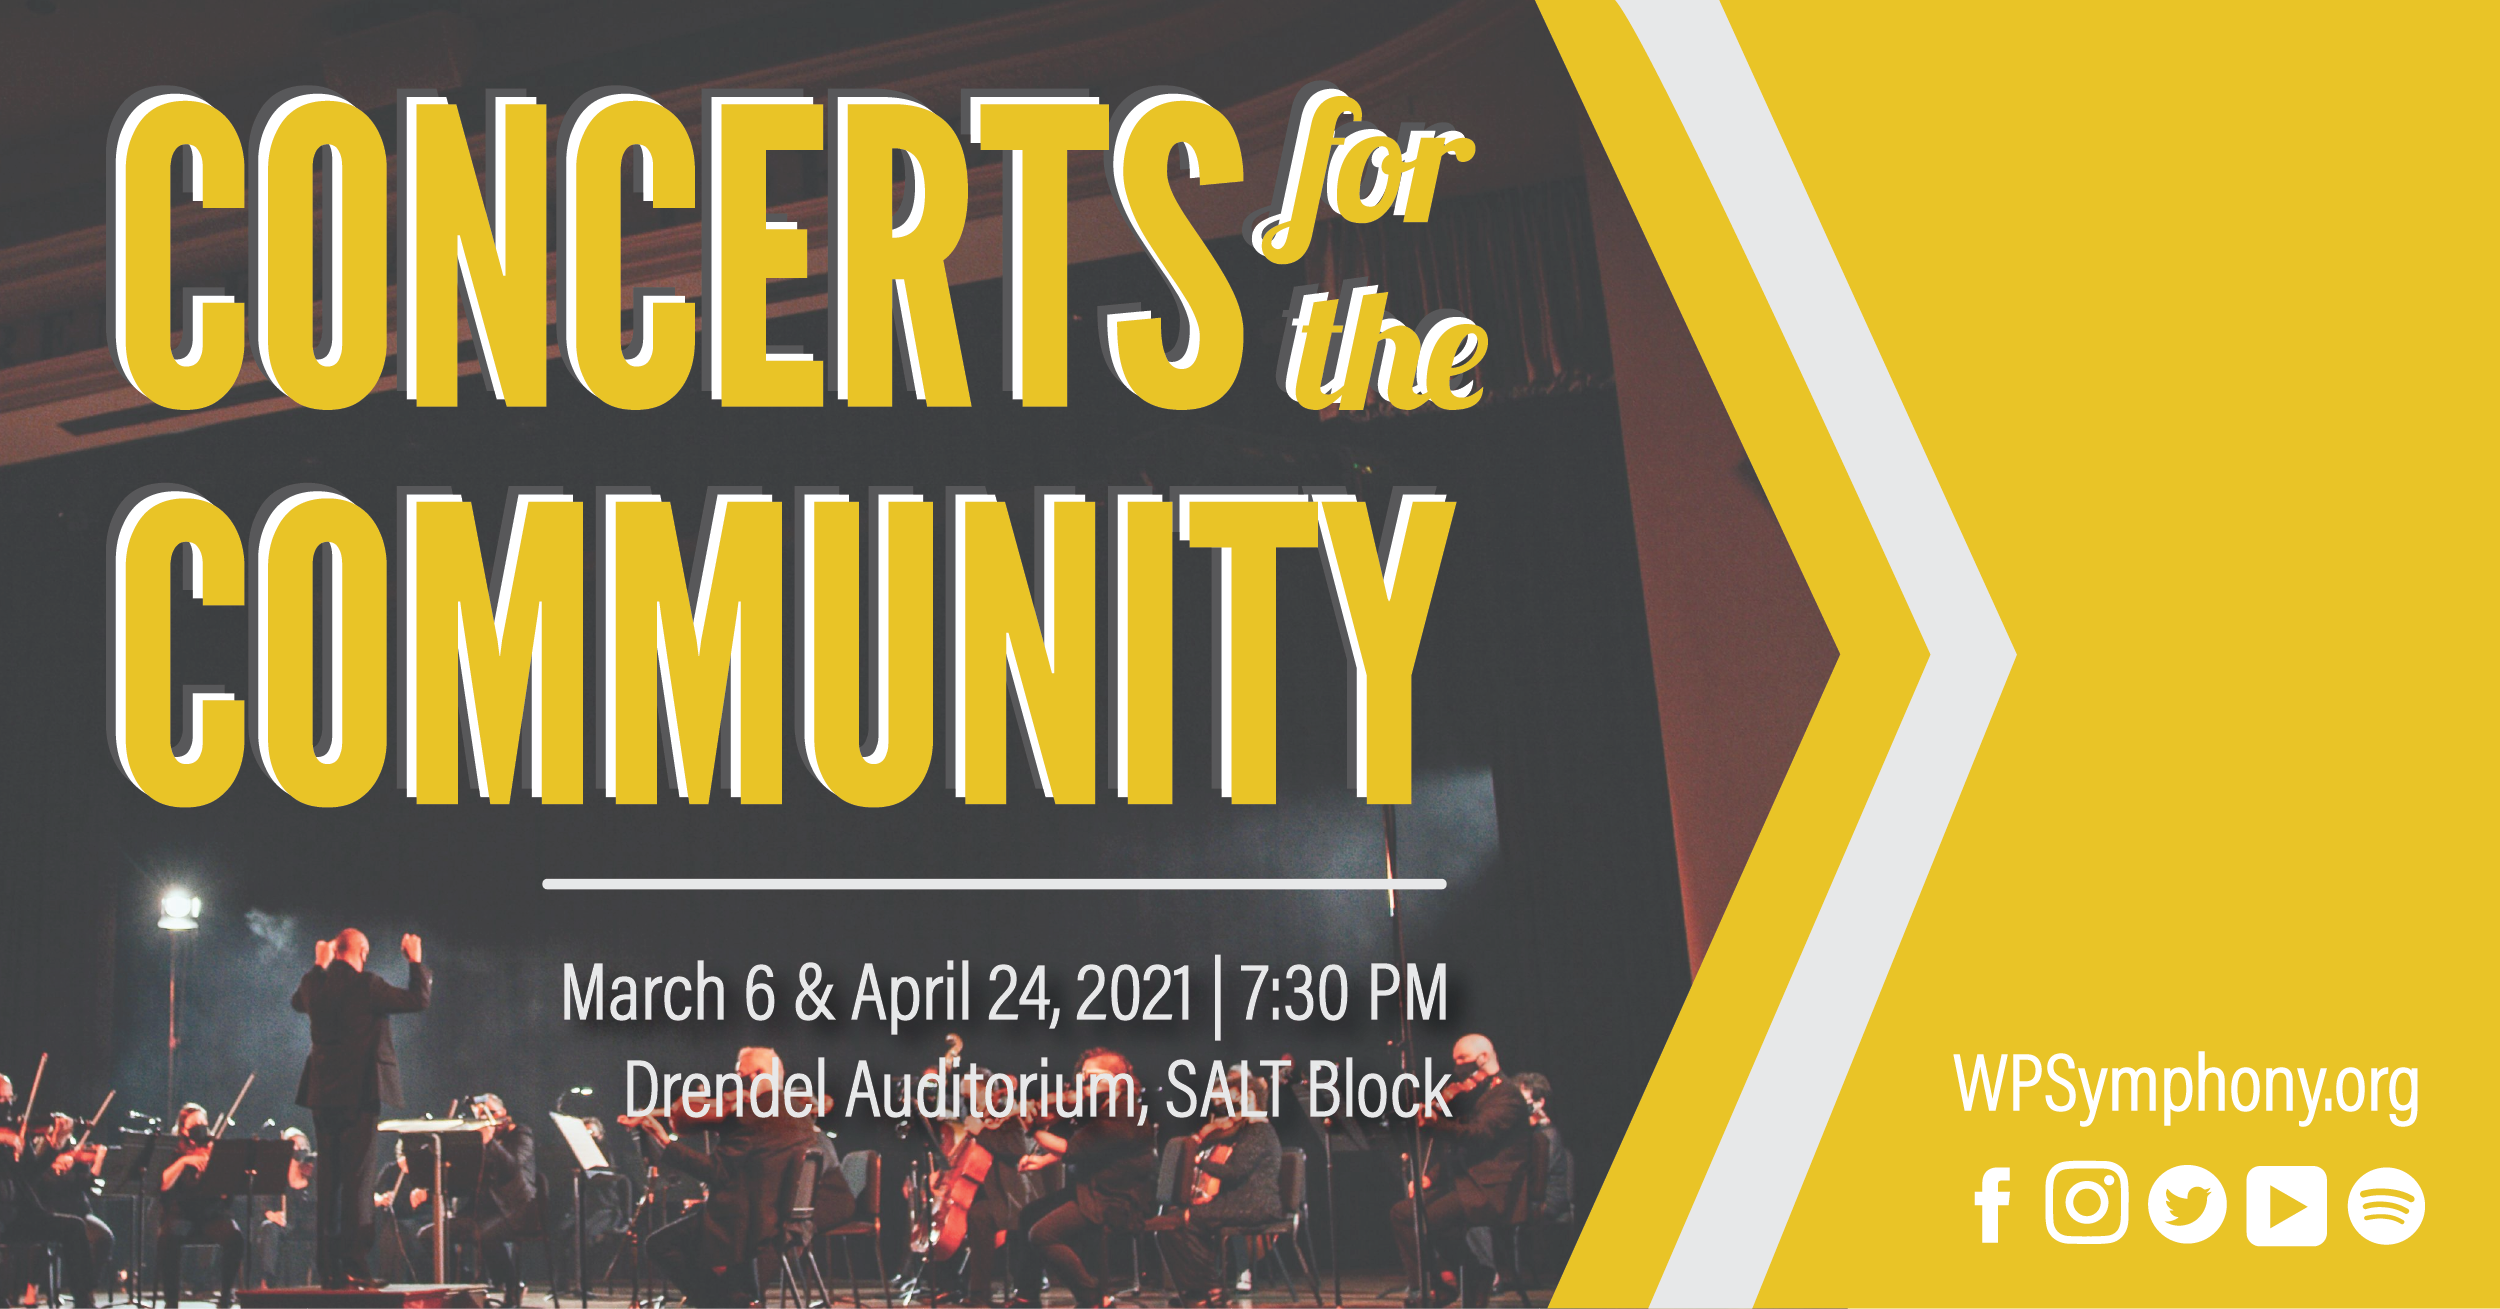 Concerts for the Community FB Cover